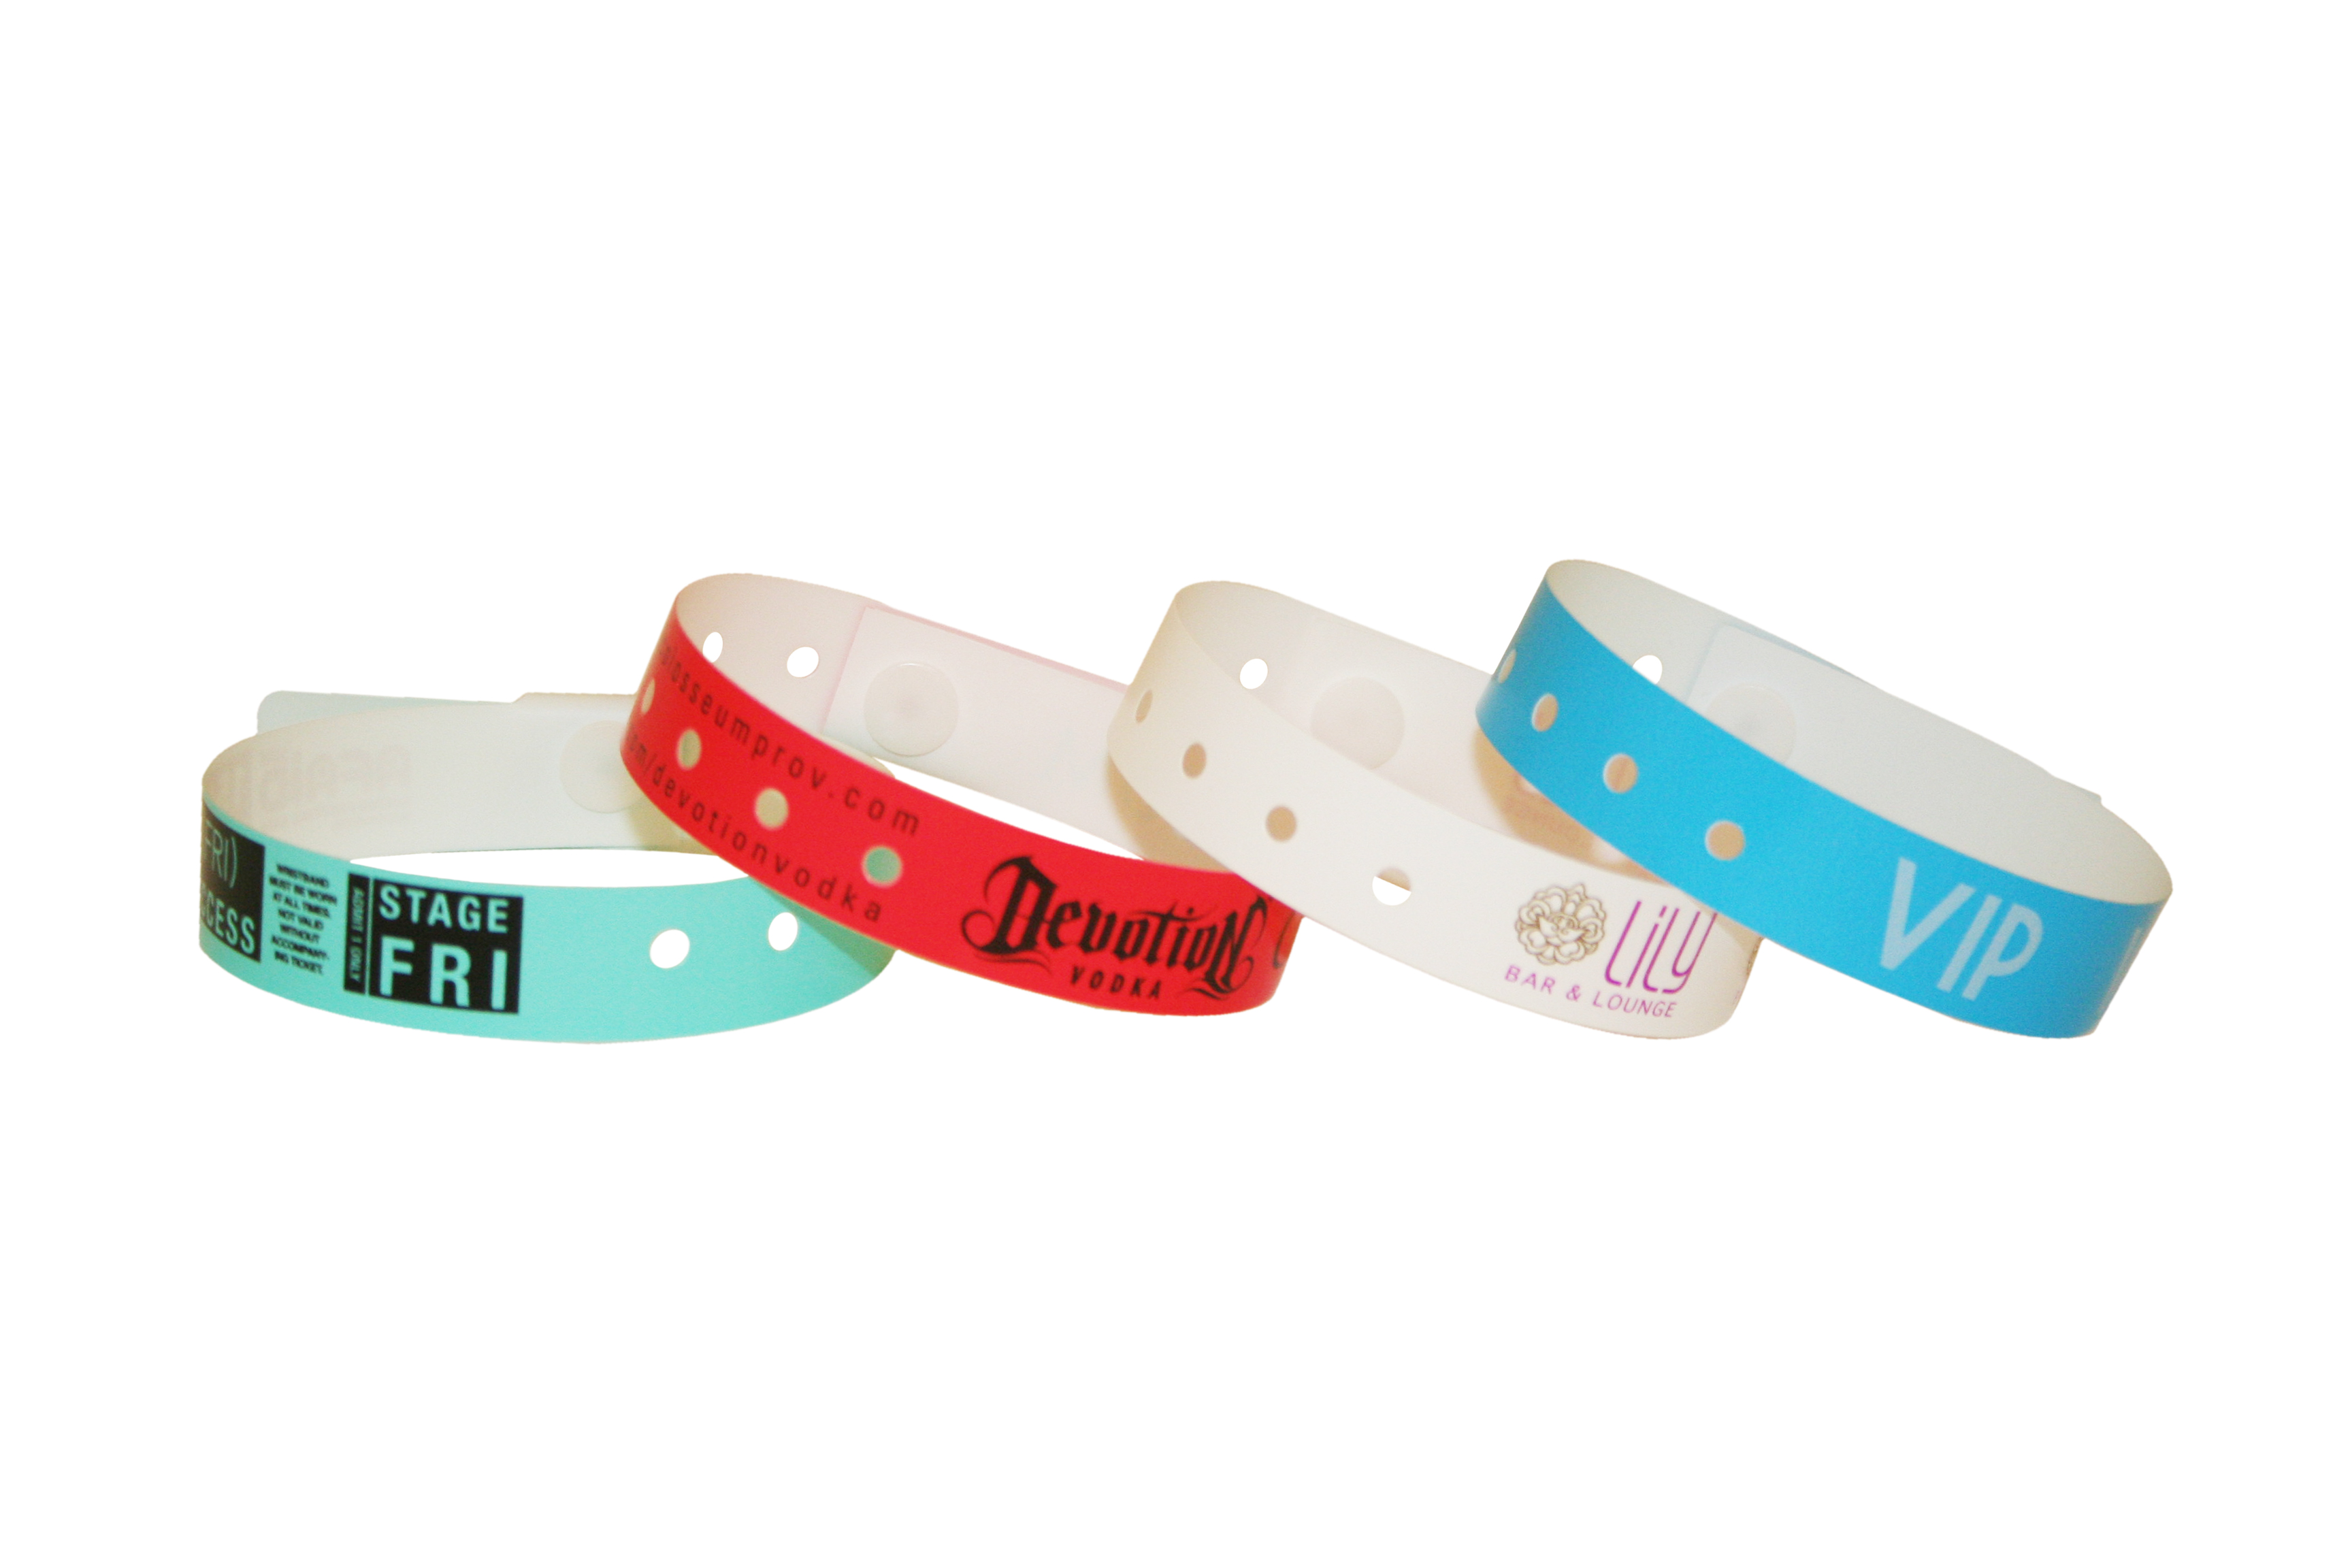 Plastic Waterproof Wristbands Are Great For Long Term Use